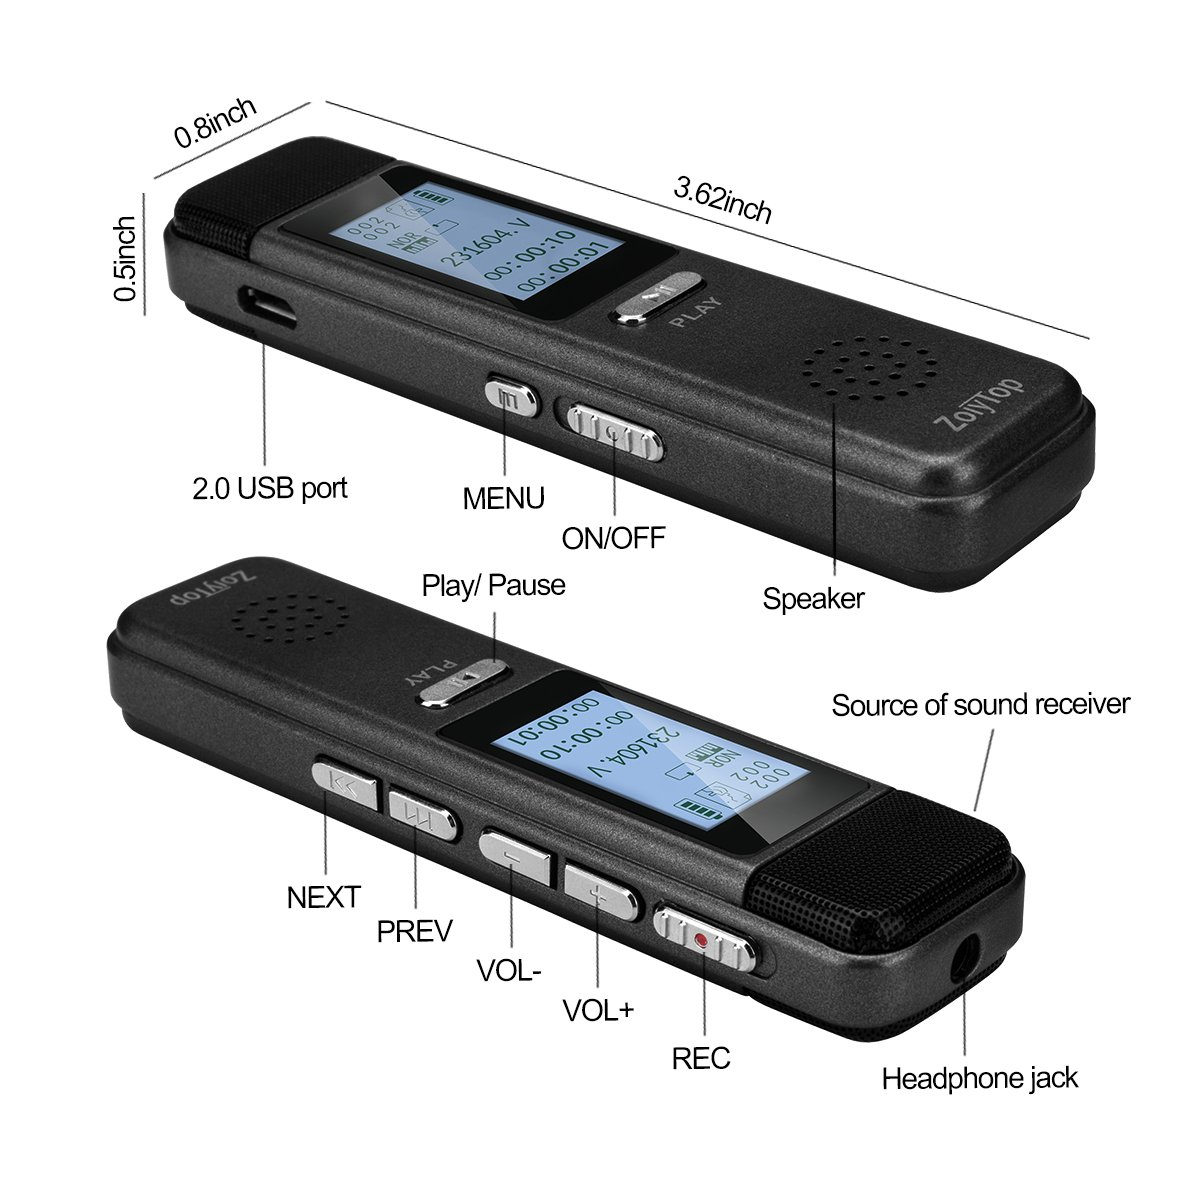 Digital Voice Recorder, ZoiyTop 8GB 3072Kbps Sound Audio Recorder Dictaphone,Double Microphone HD Recording,Premium Quality Metal Casing,Noise Cancelling, MP3 Player